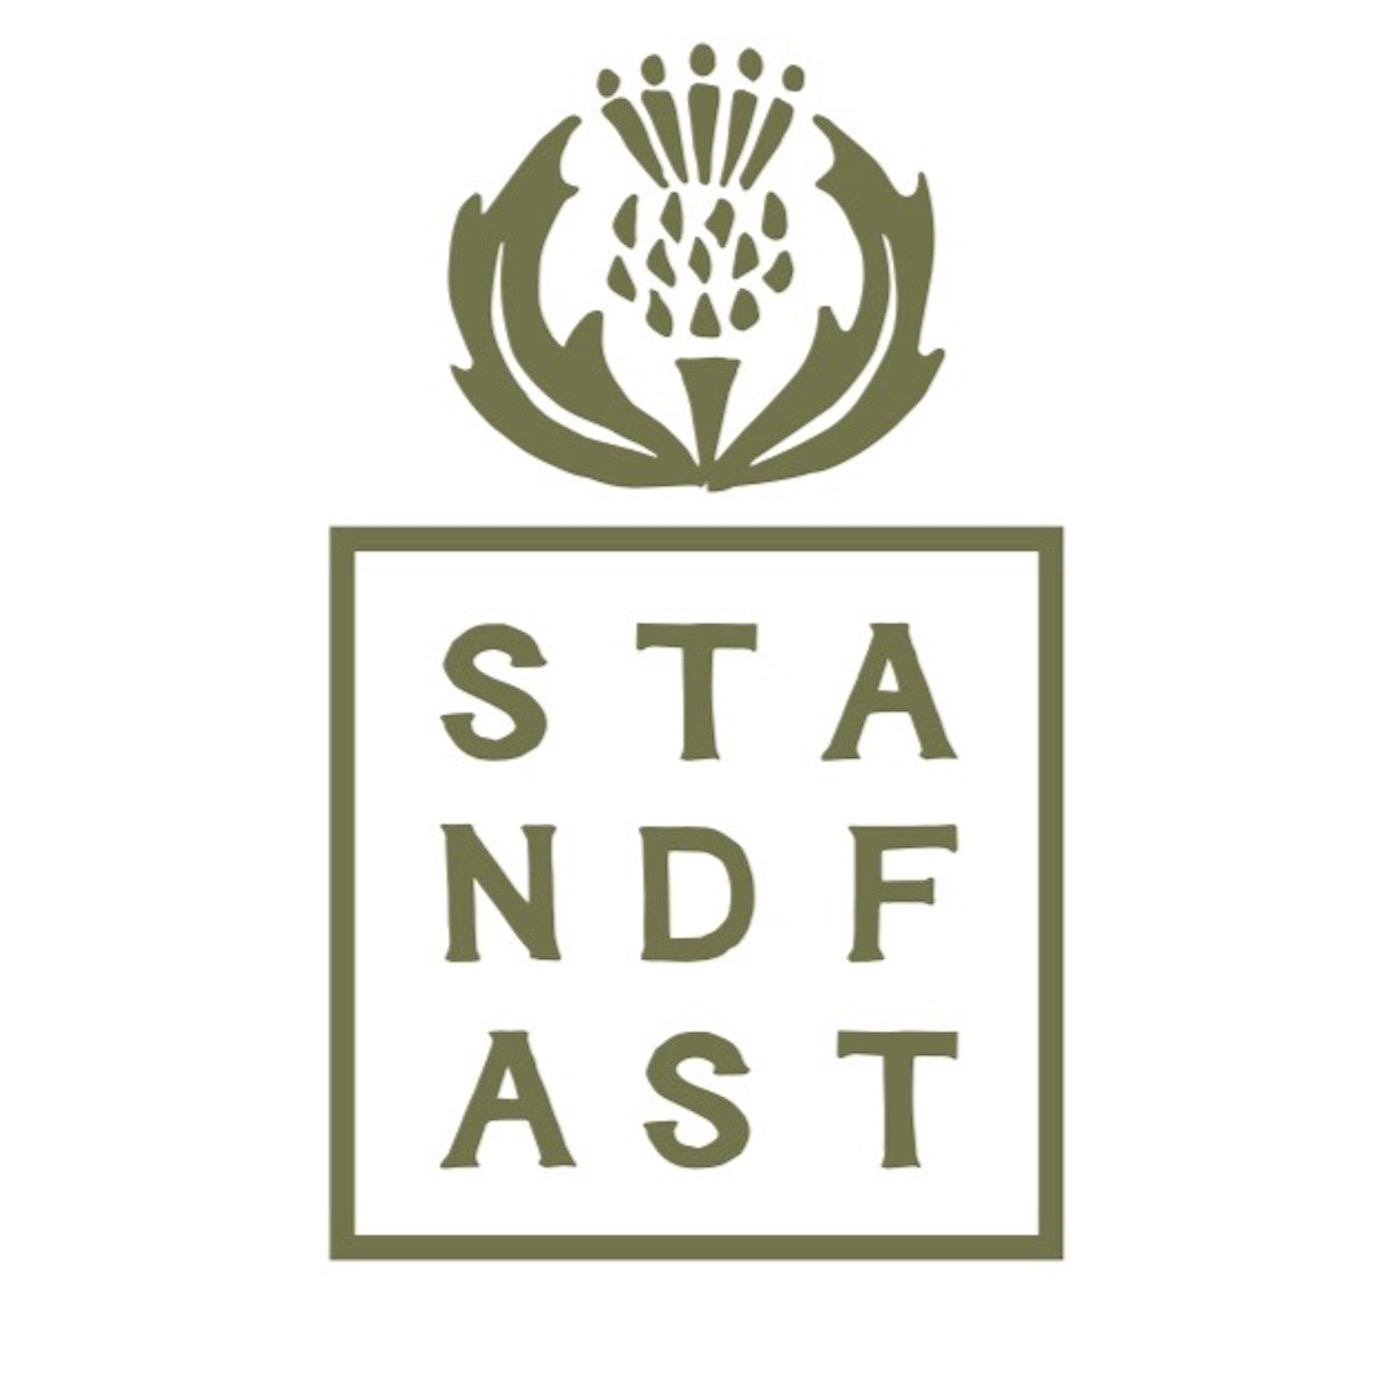 The StandFast Cast show art